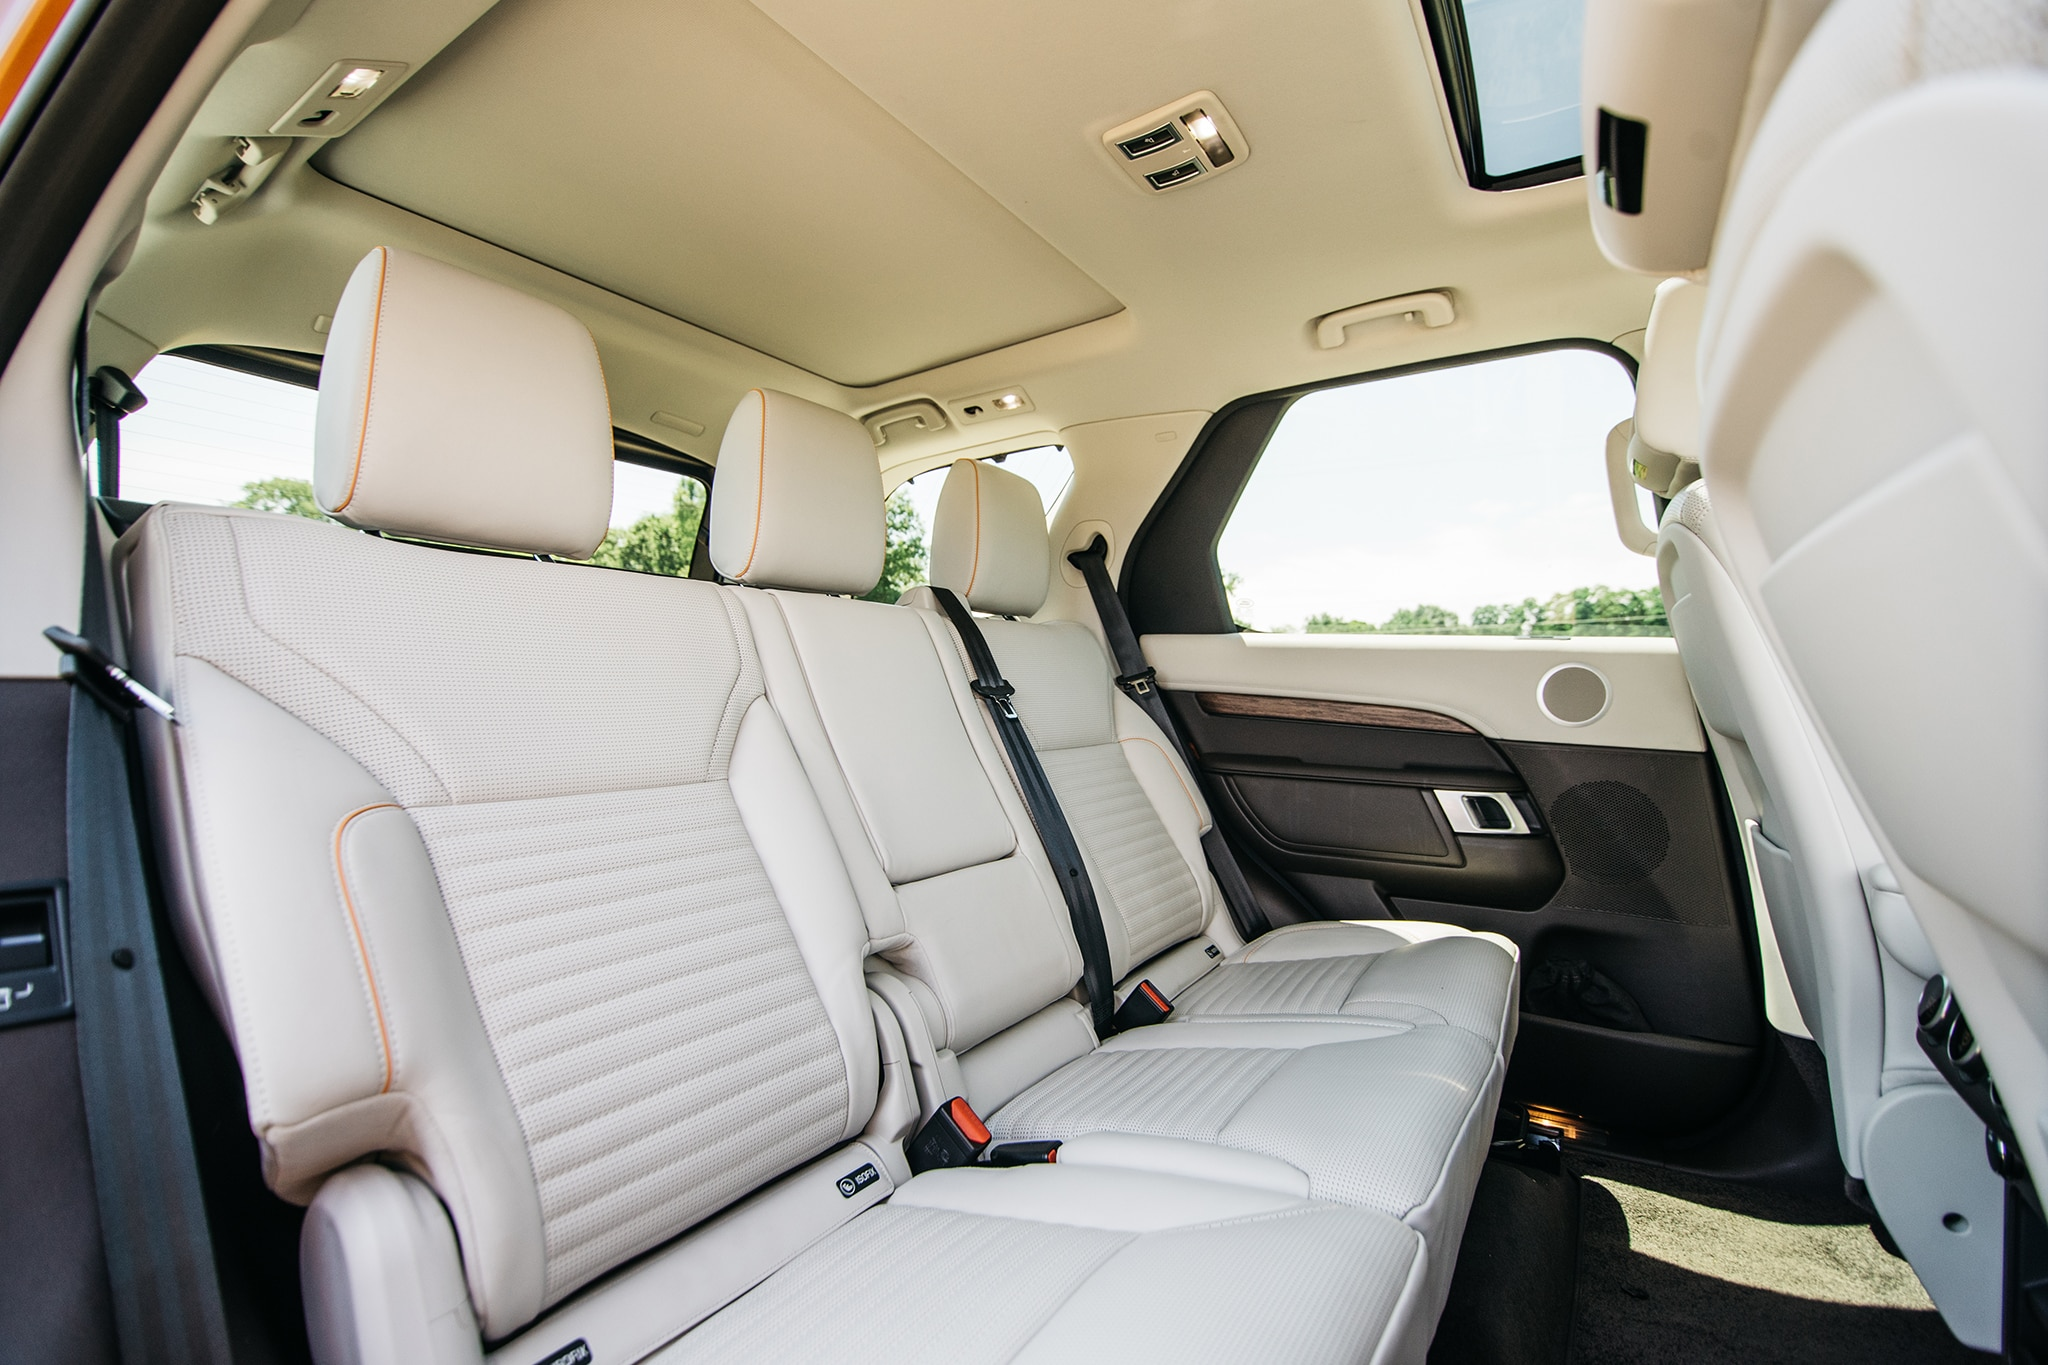 2017 Land Rover Discovery Td6 HSE Rear Seat 01